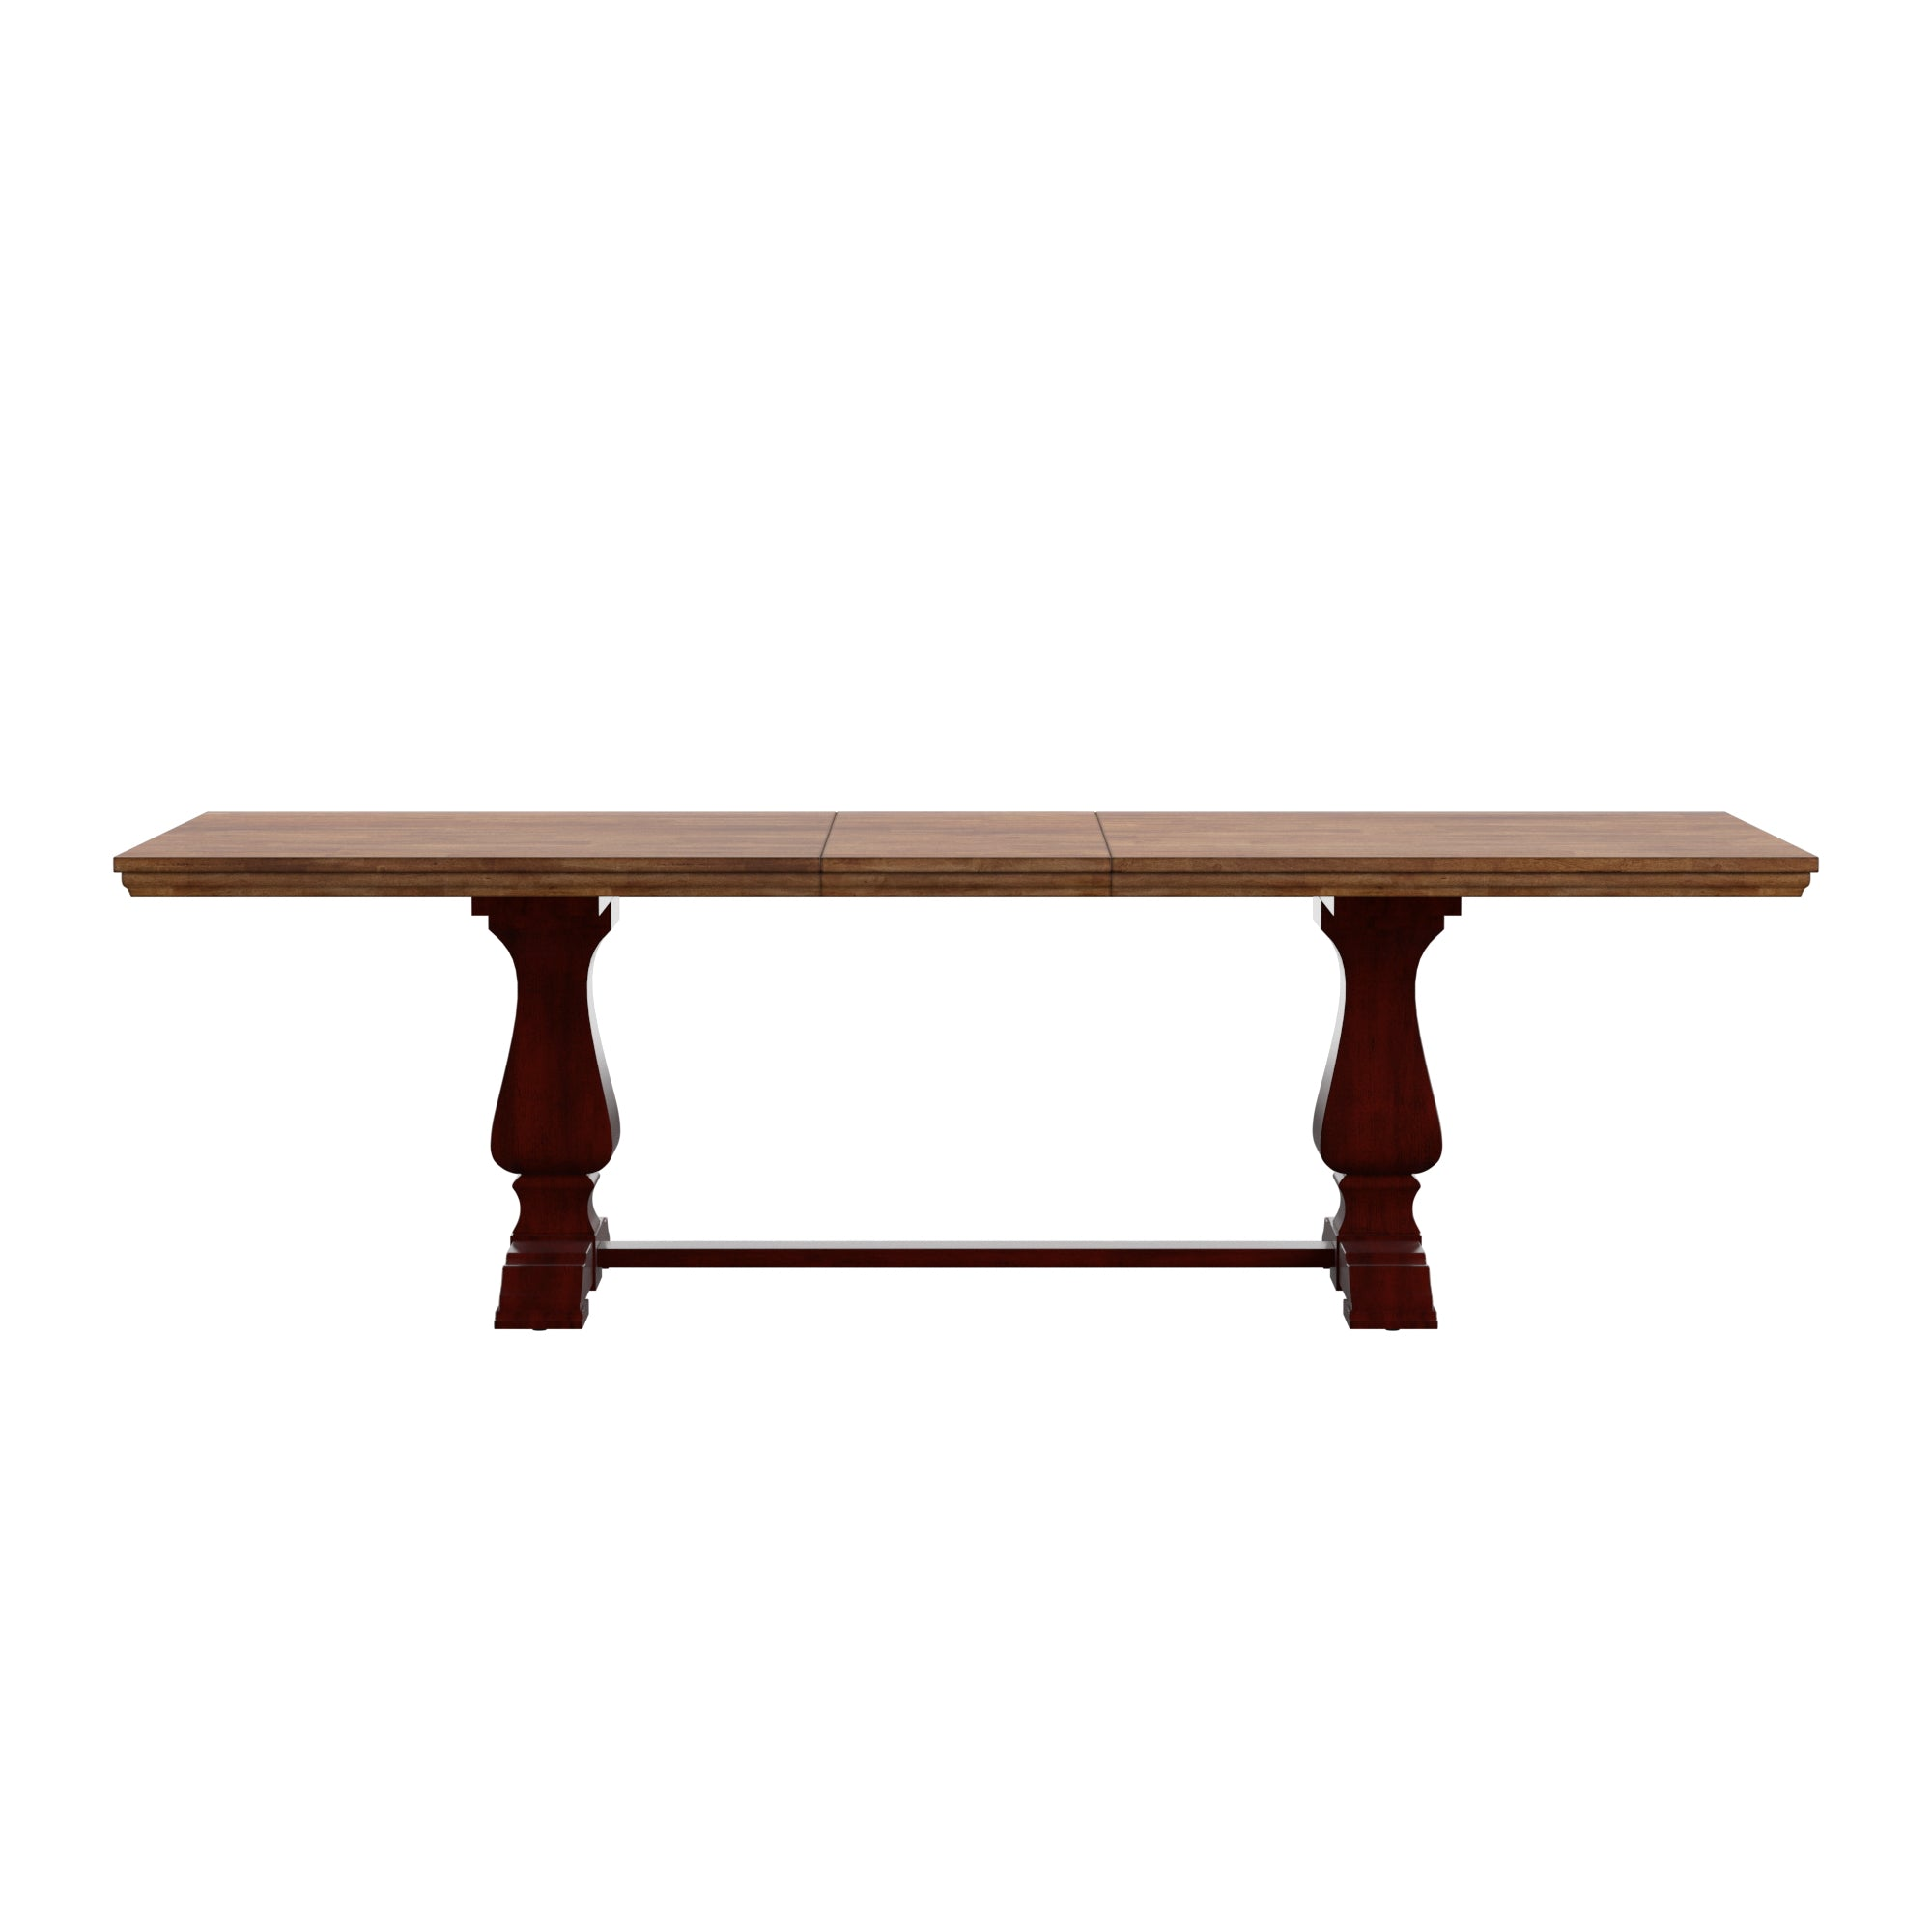 Oak Finish Top 86-104-inch Dining Table with Leaf - Antique Red